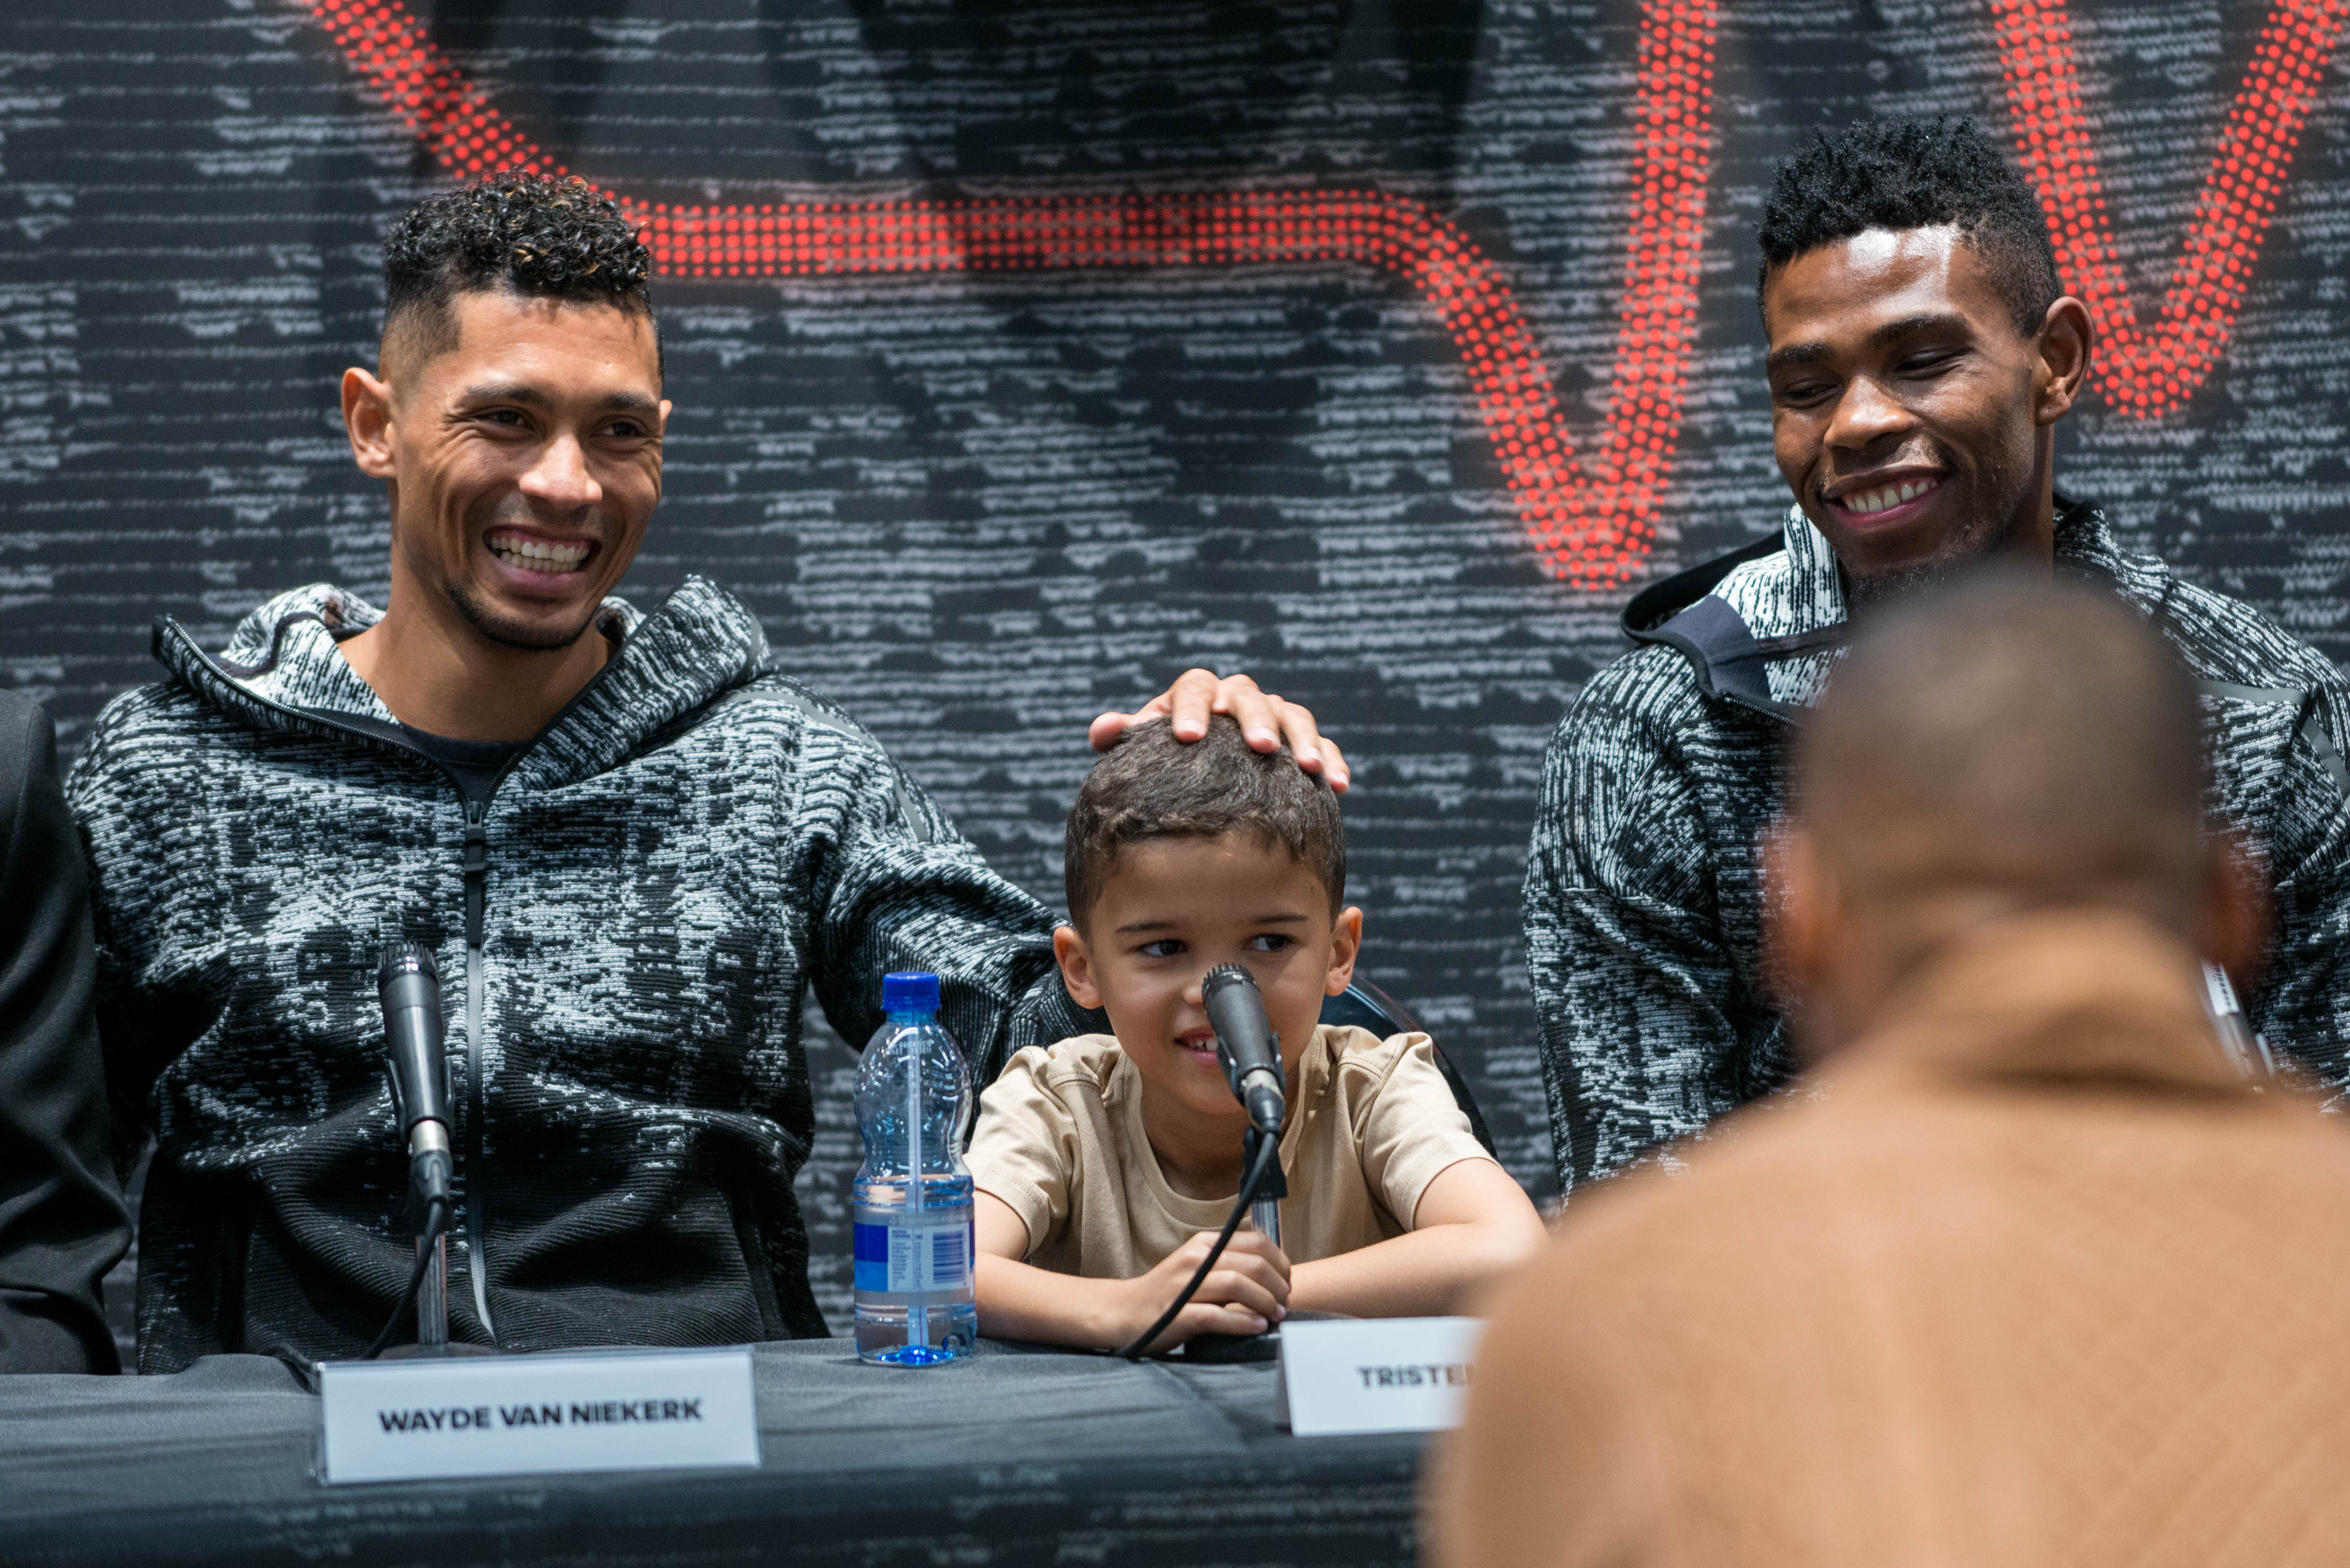 adidas Athletes Inspire The Next Generation at Z.N.E Pulse Activation DSC4006